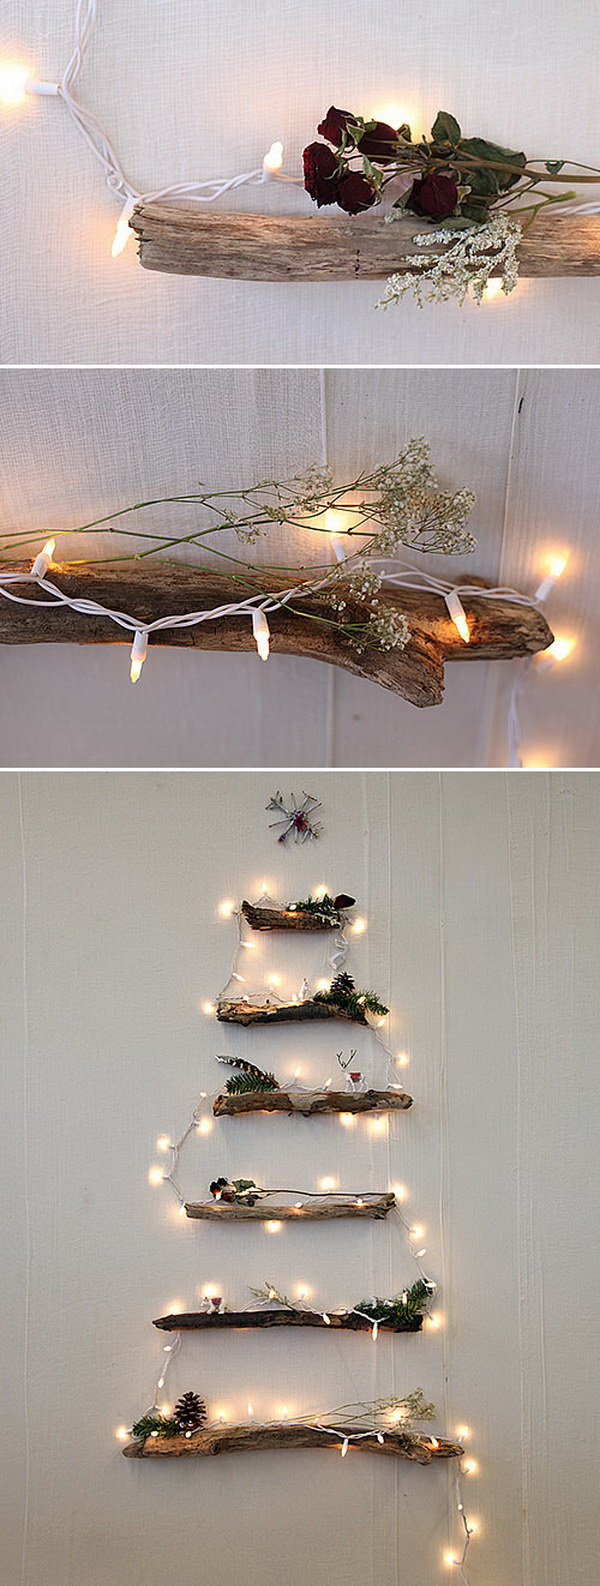 DIY Lighted Twig Christmas Tree. A beautiful DIY Christmas tree made with string lights and rustic twigs on the wall. Great idea for indoor Christmas decoration!